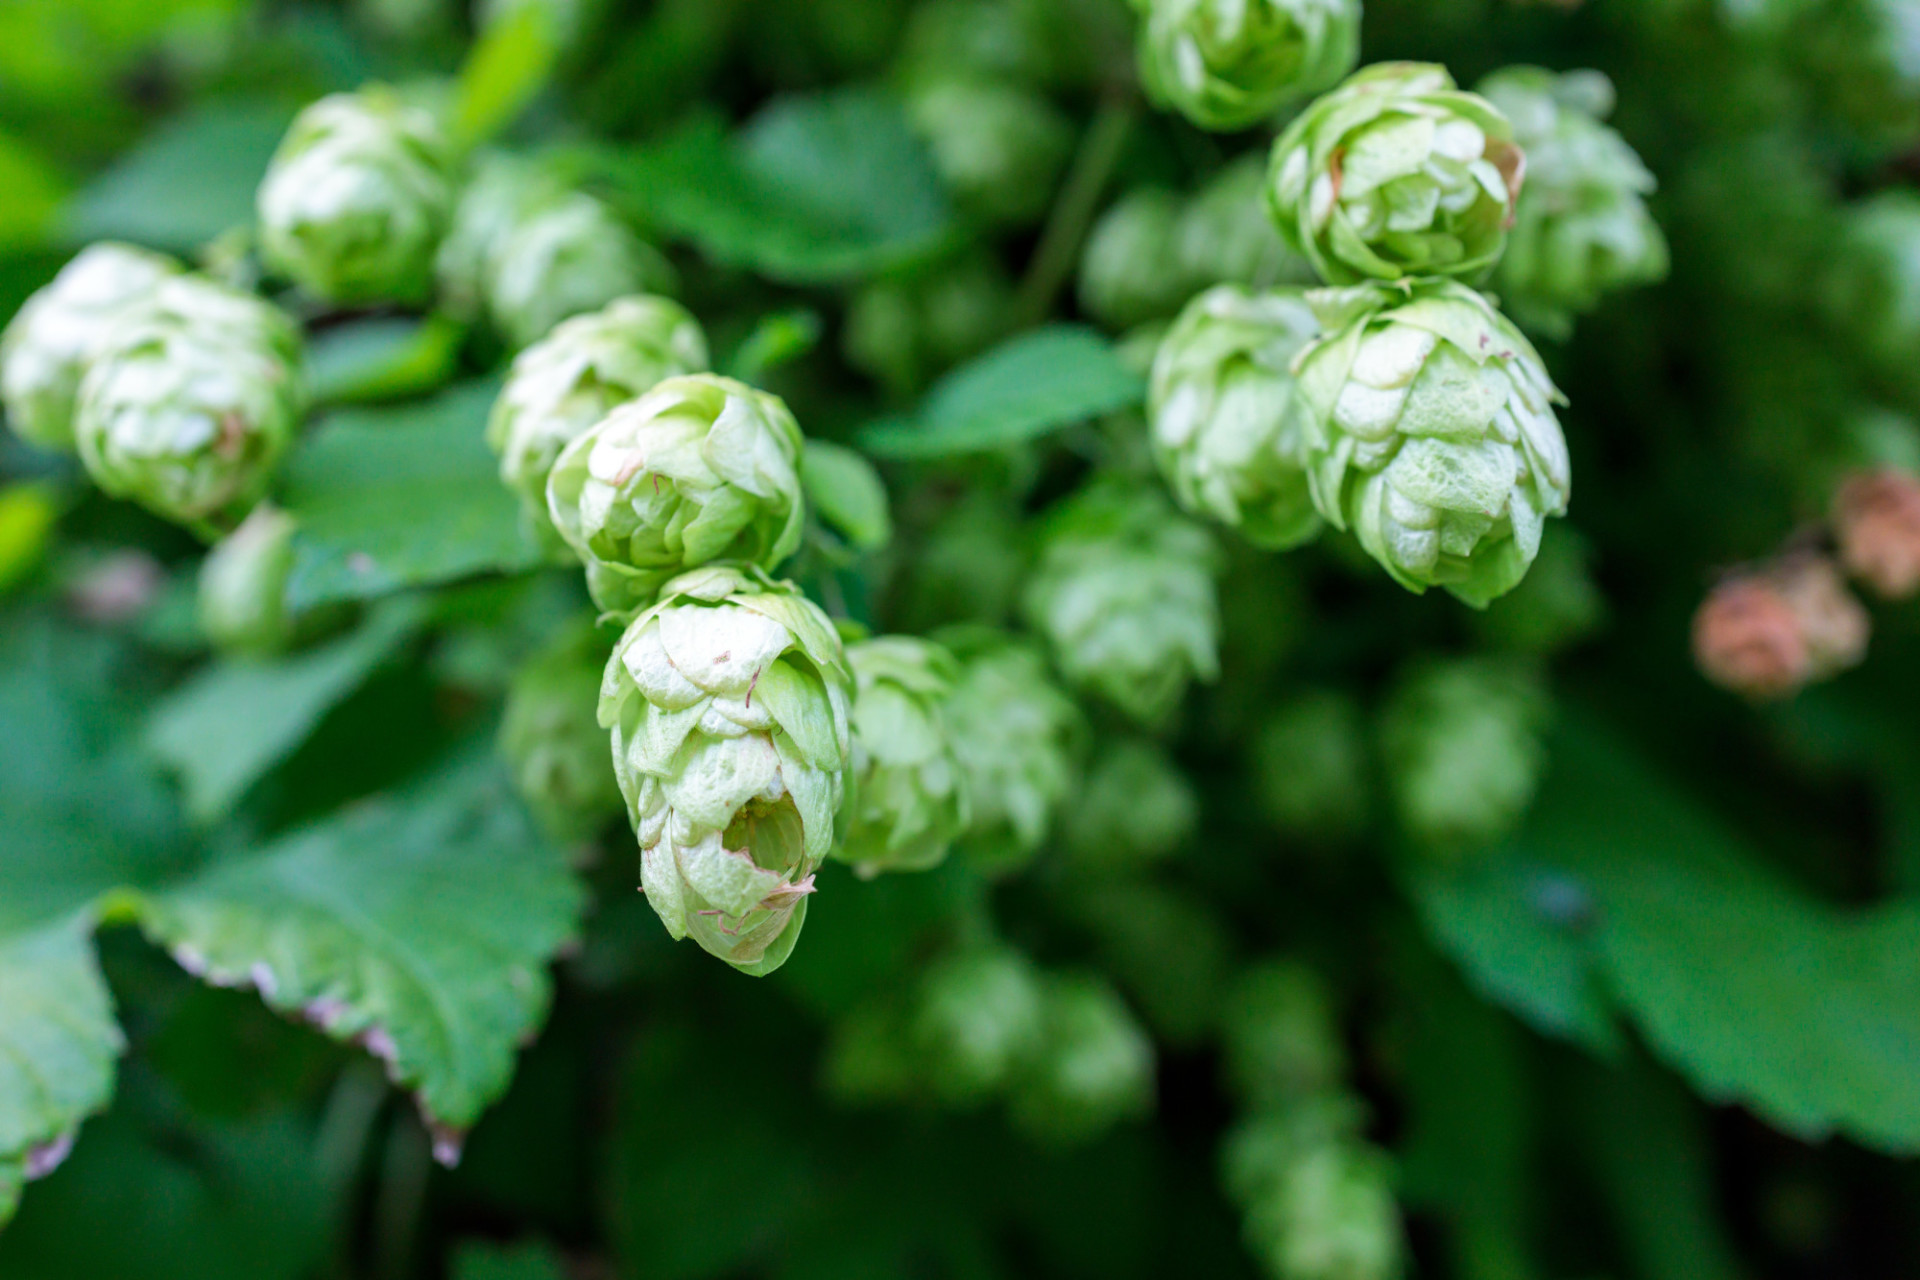 Hops ripening in late summer